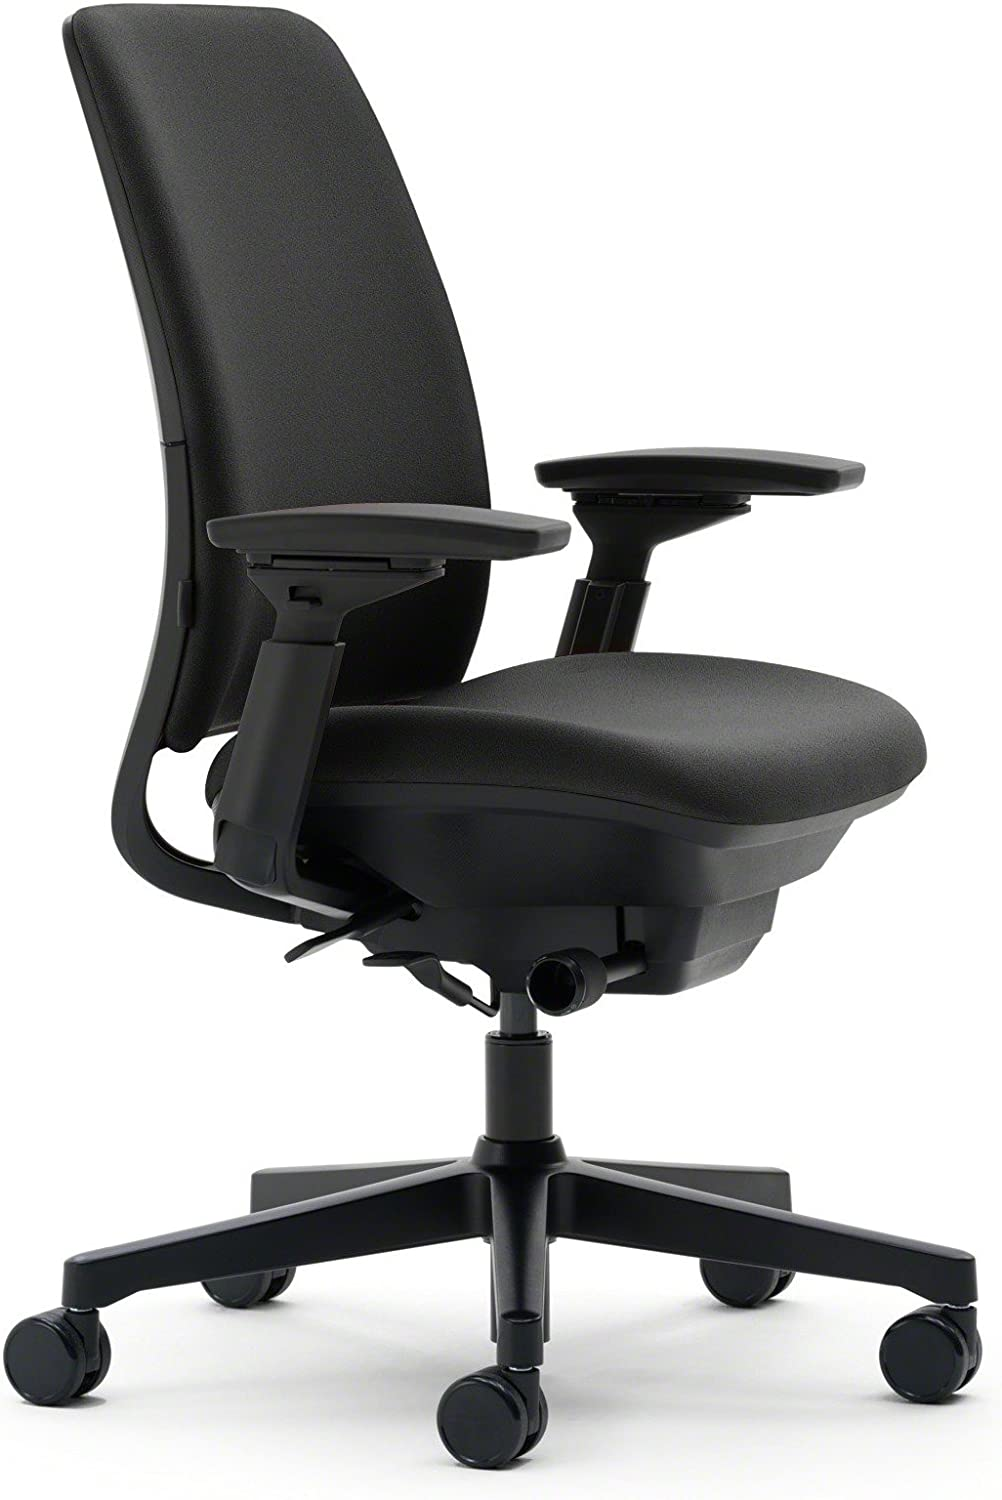 71hULTCzLuL. AC SL1500 - What Is The Best Office Chair For Short Person With Back Pain - ChairPicks